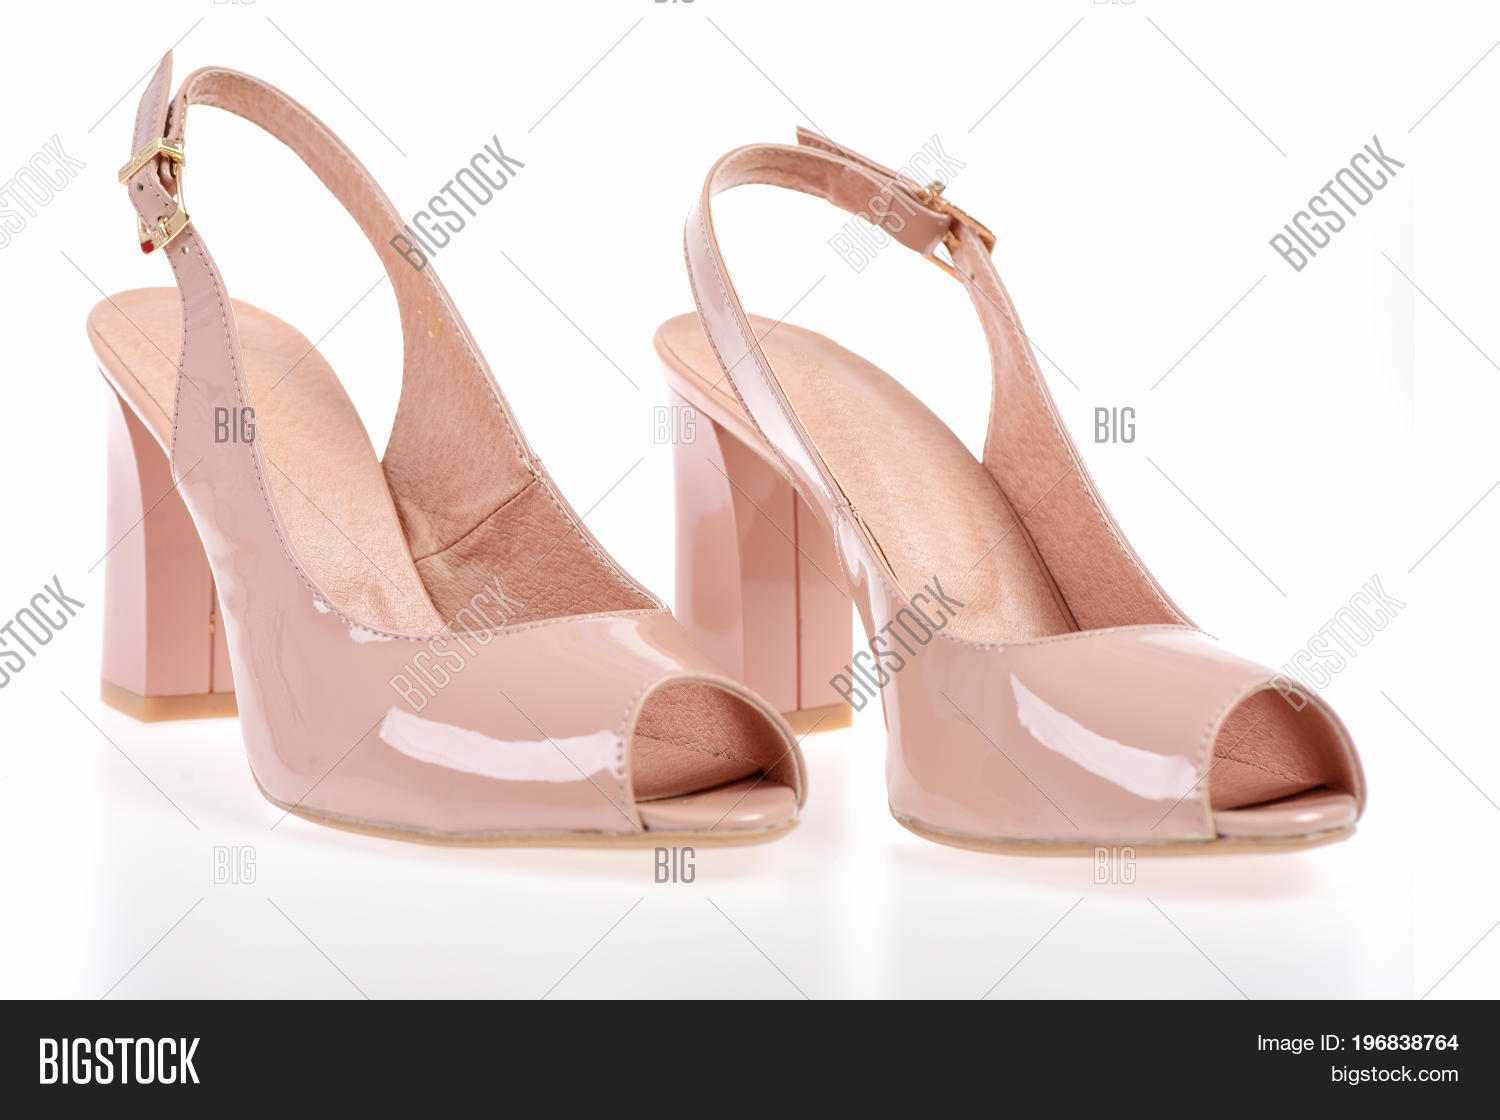 53a2cff6a Female high heel sandals isolated on white background. Womens patent leather  shoes close up. Pair of shoes in pink colour. Summer accessories  high heel  ...